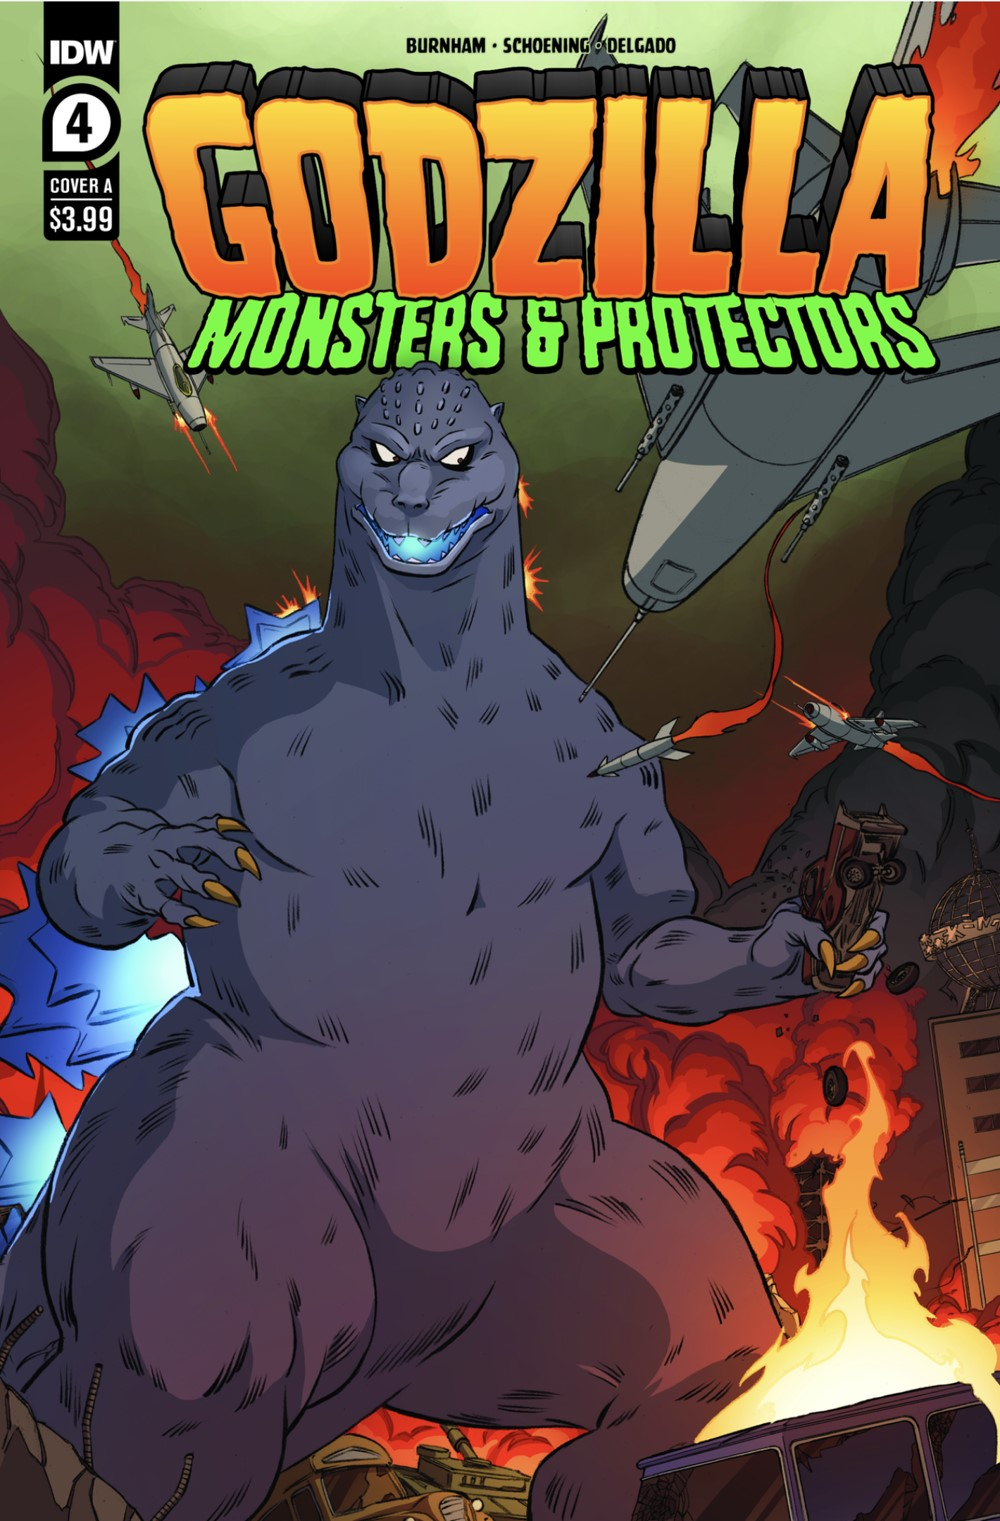 GODZILLA-MONSTERS-PROTECTORS-4-COVER-A ComicList: IDW Publishing New Releases for 07/21/2021